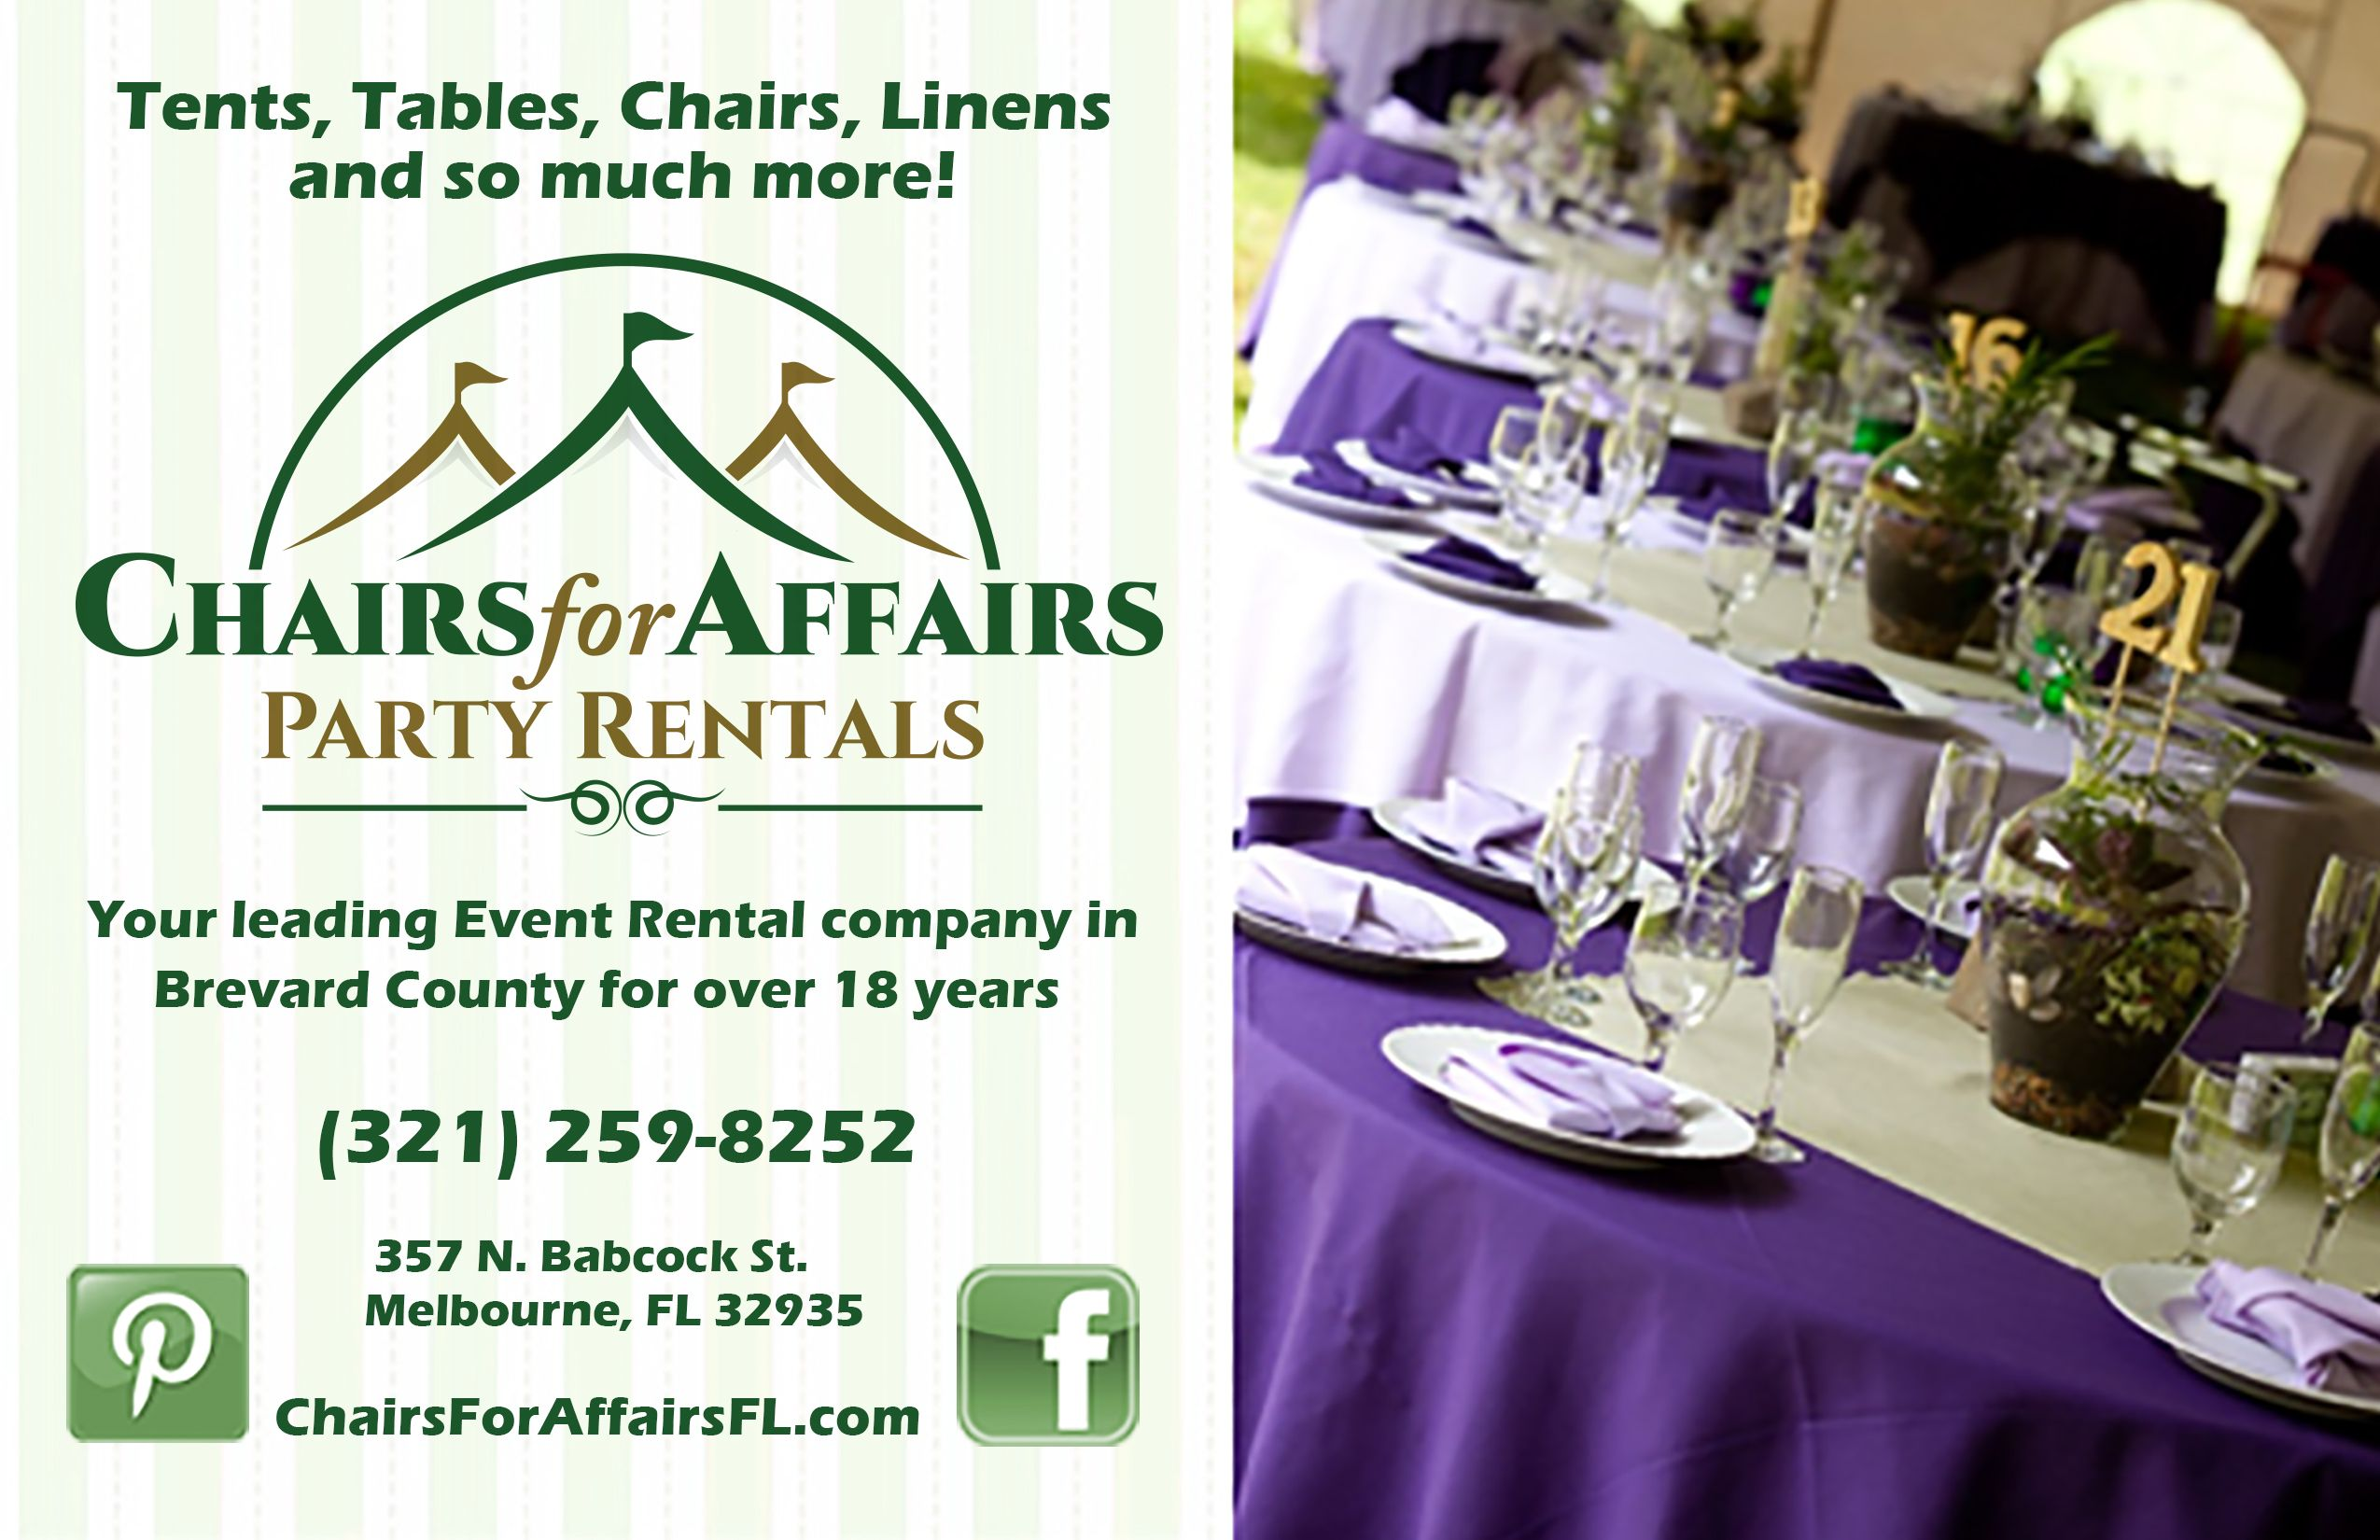 Chairs for Affairs Party Rentals Inc